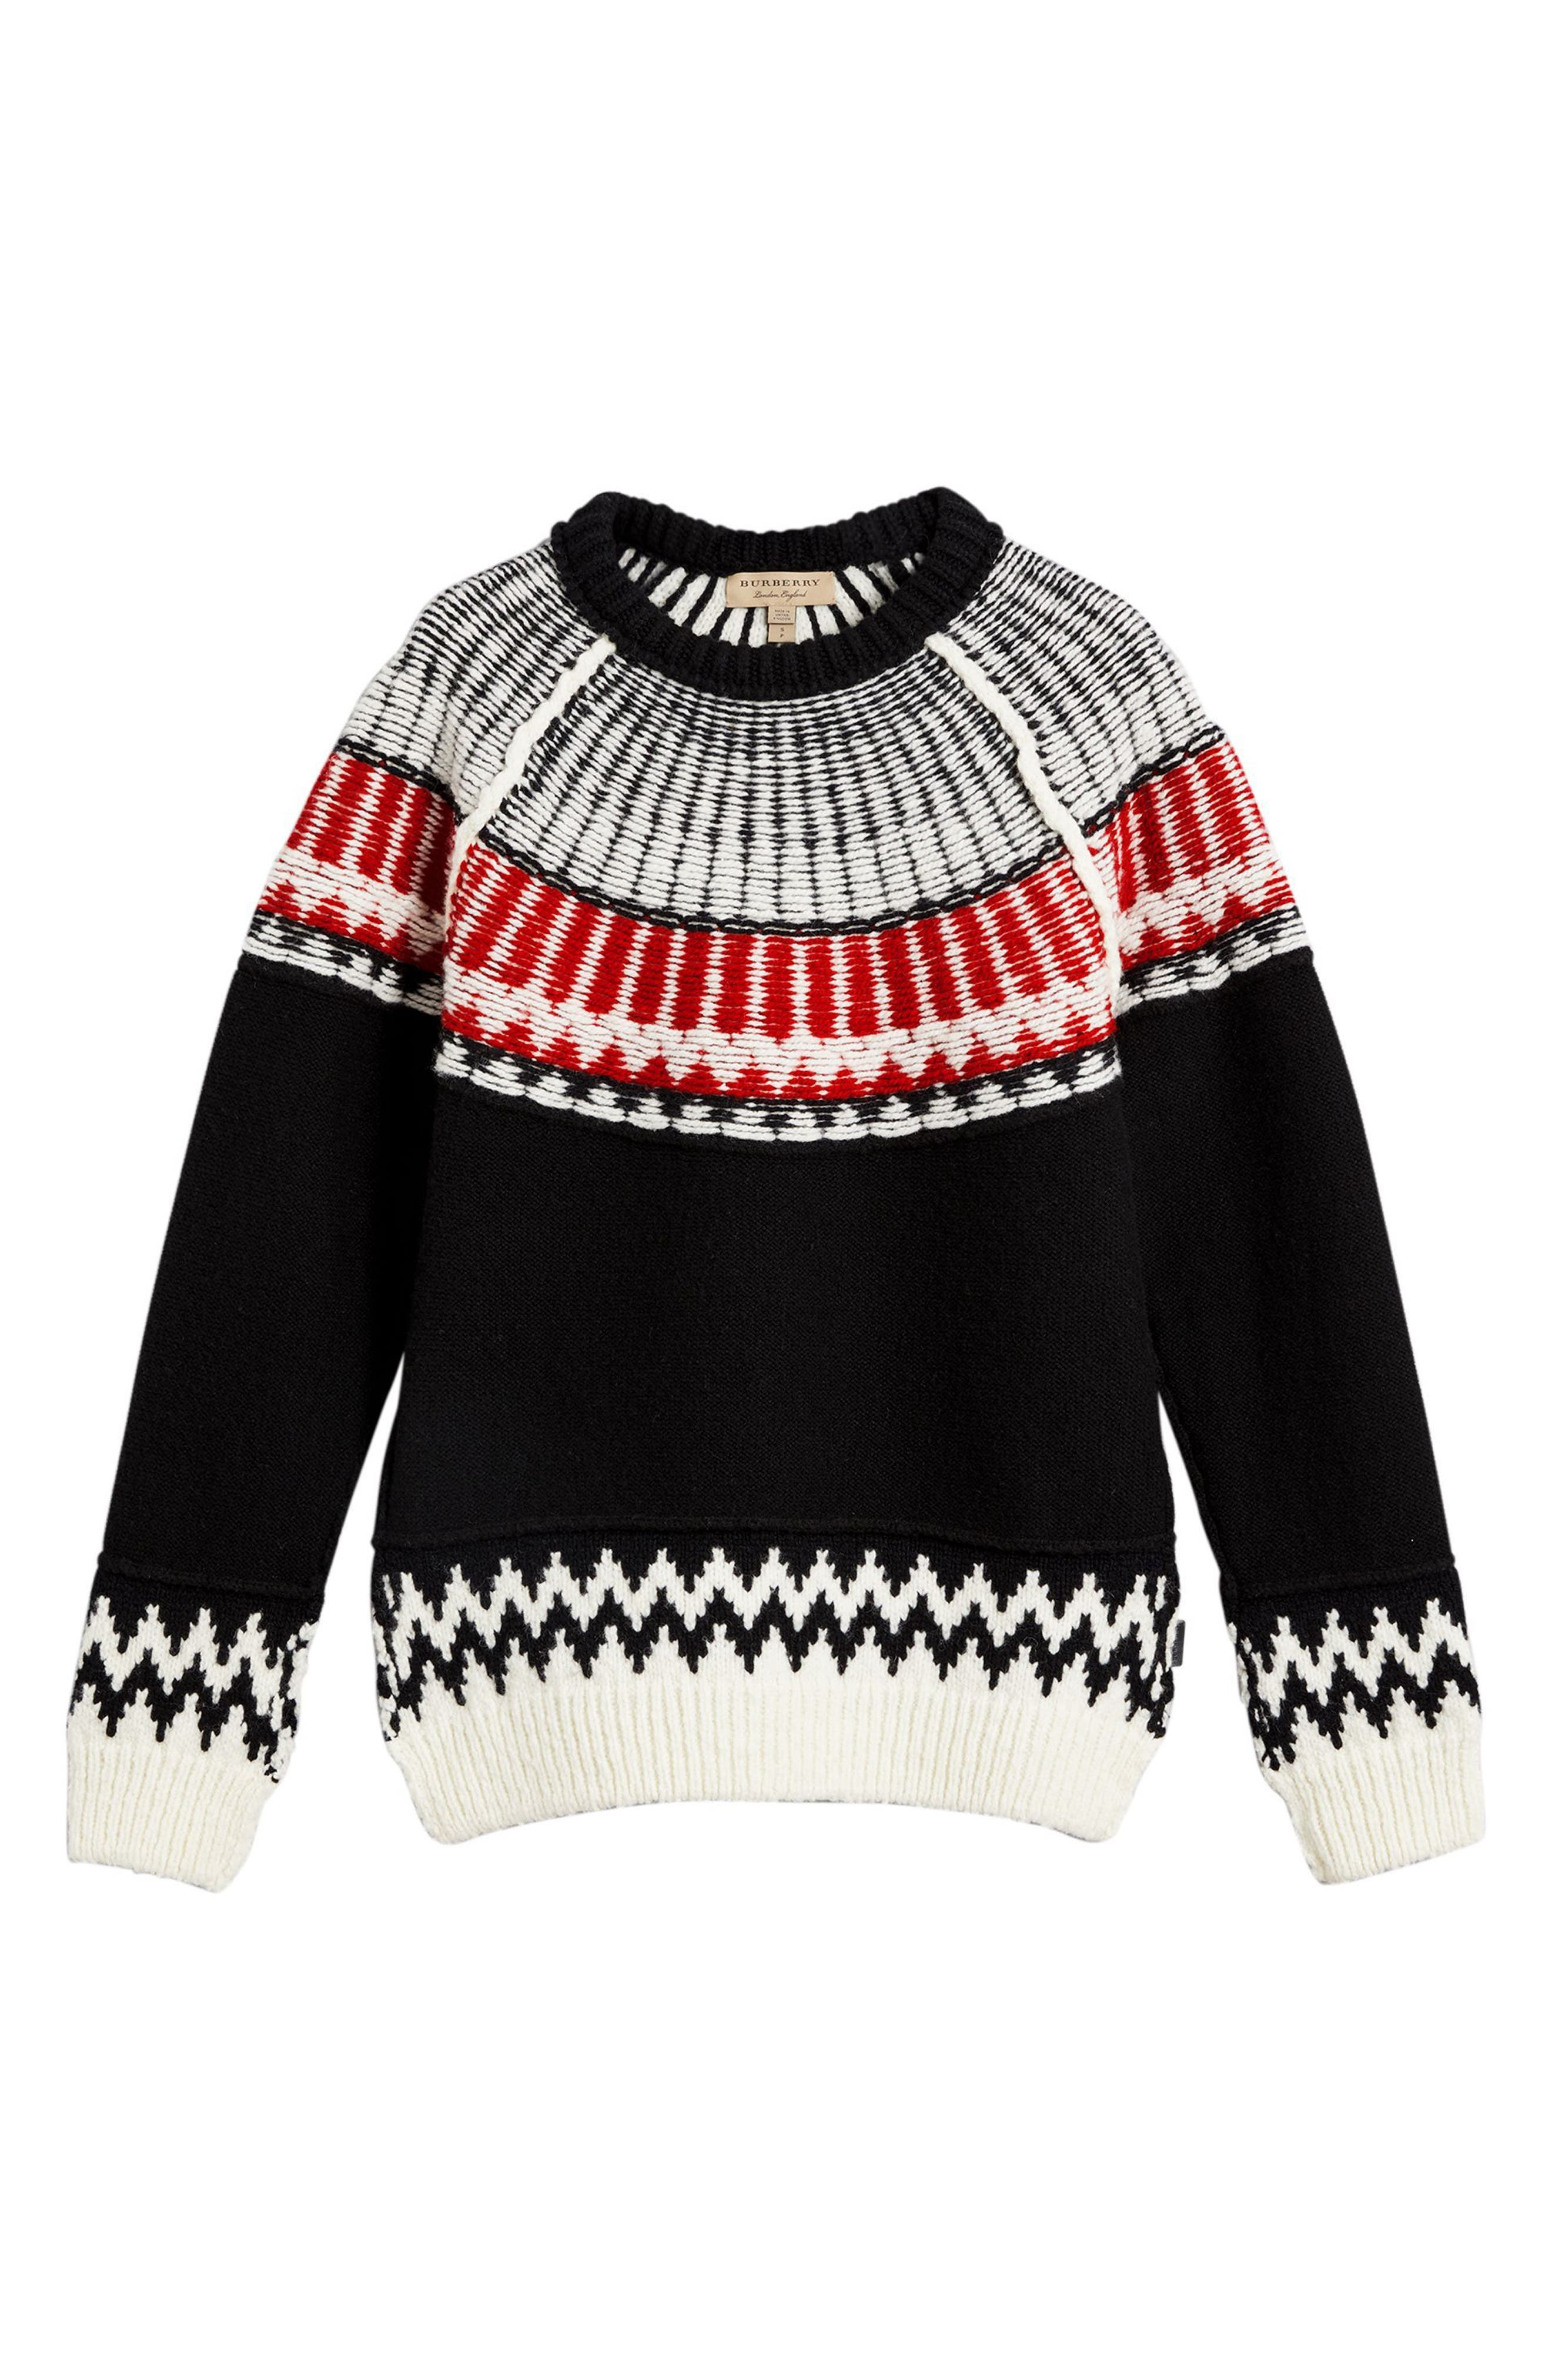 Trycroft Fair Isle Wool Blend Sweater,                             Alternate thumbnail 6, color,                             Black/ Military Red